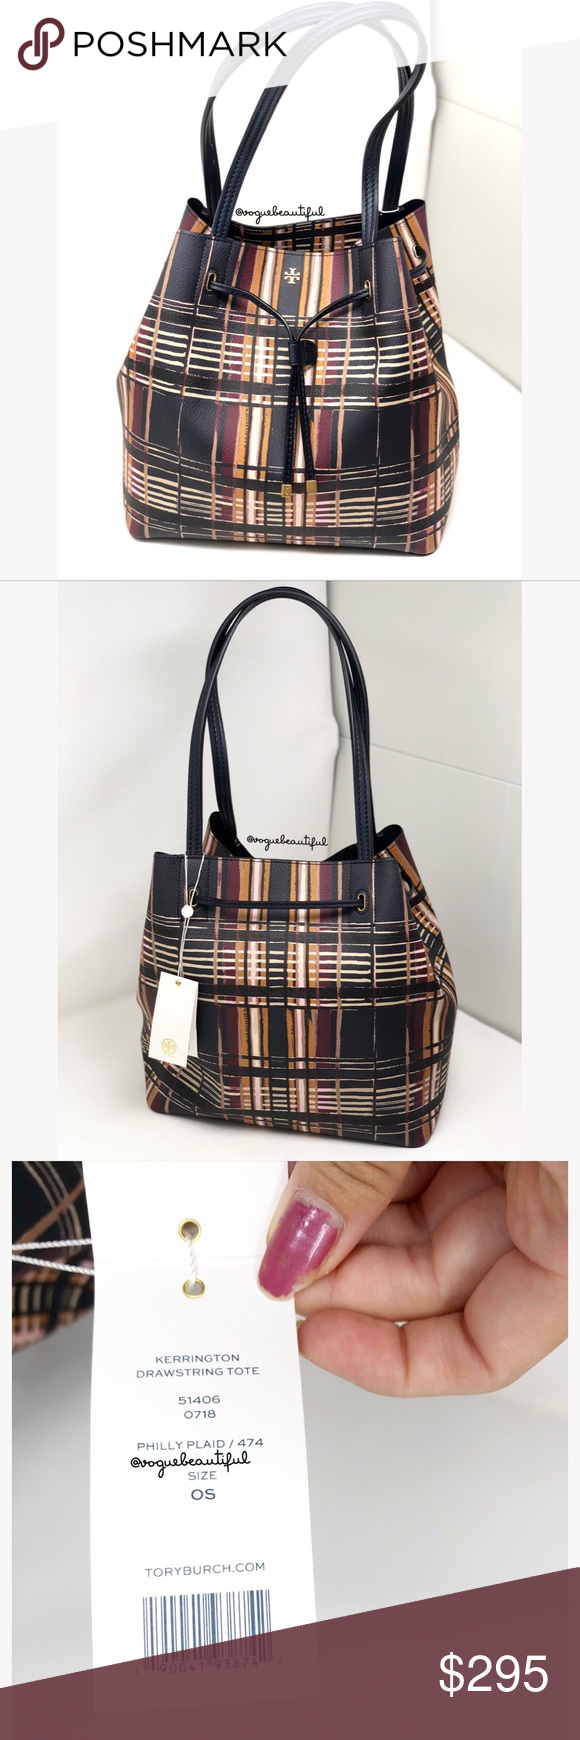 5a60757495d NWT Tory Burch Kerrington Drawstring Tote Plaid Brand new Tory Burch  Kerrington Drawstring Tote Philly Plaid